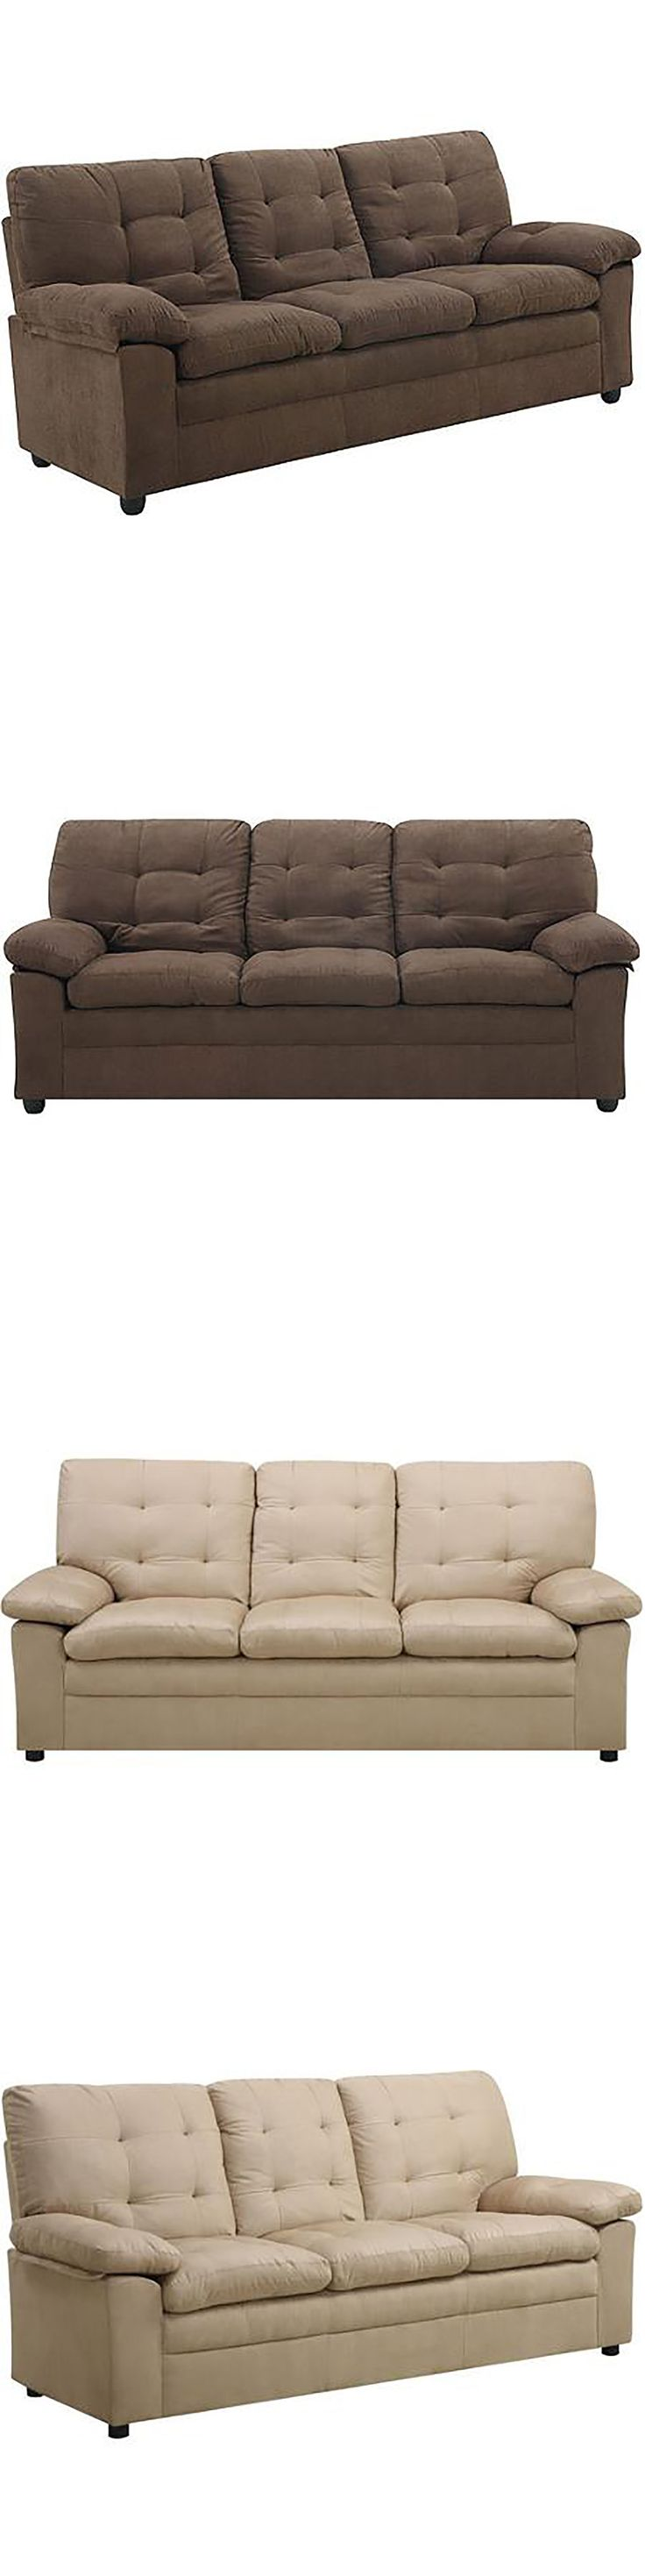 1000 Ideas About Couch Cleaner On Pinterest Couch Cleaning Cleaning Microfiber Couch And